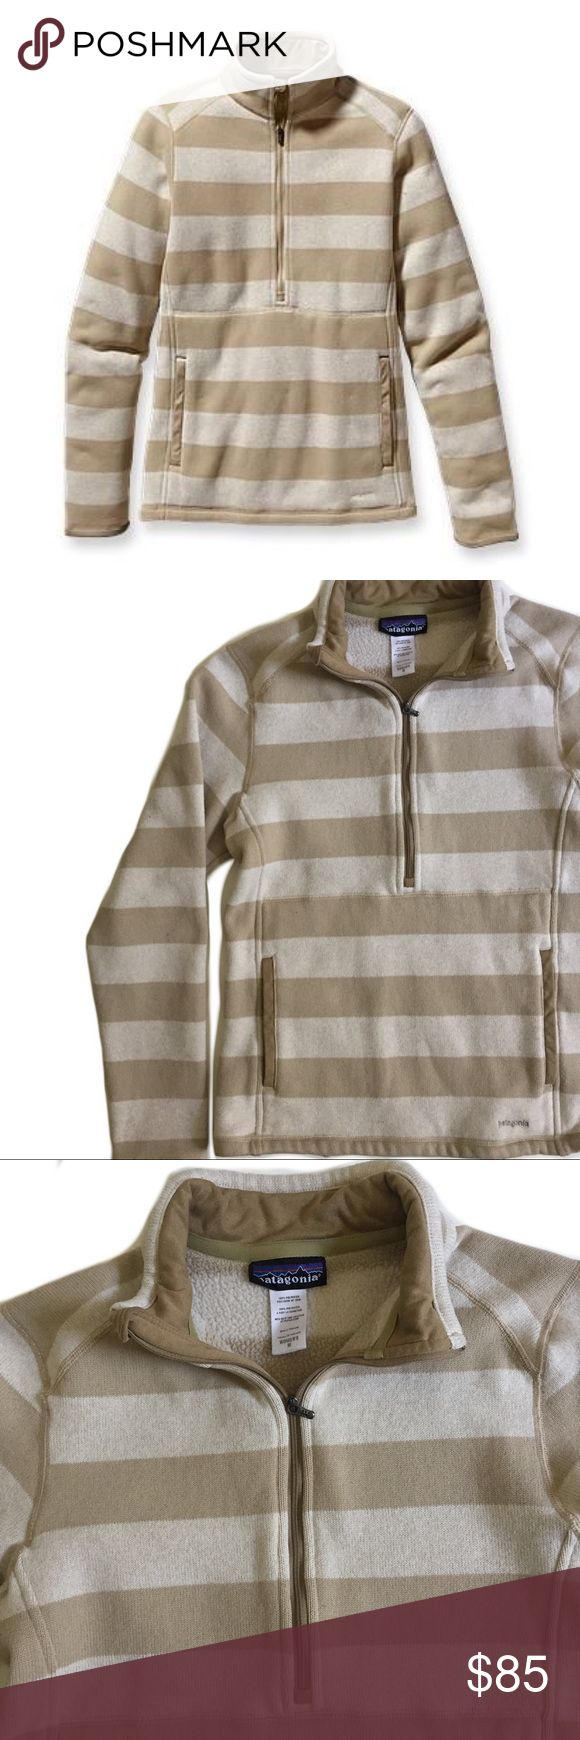 Patagonia Better Sweater Patagonia Sweater with Stripes in Great Preowned Condition 💕 Patagonia Sweaters